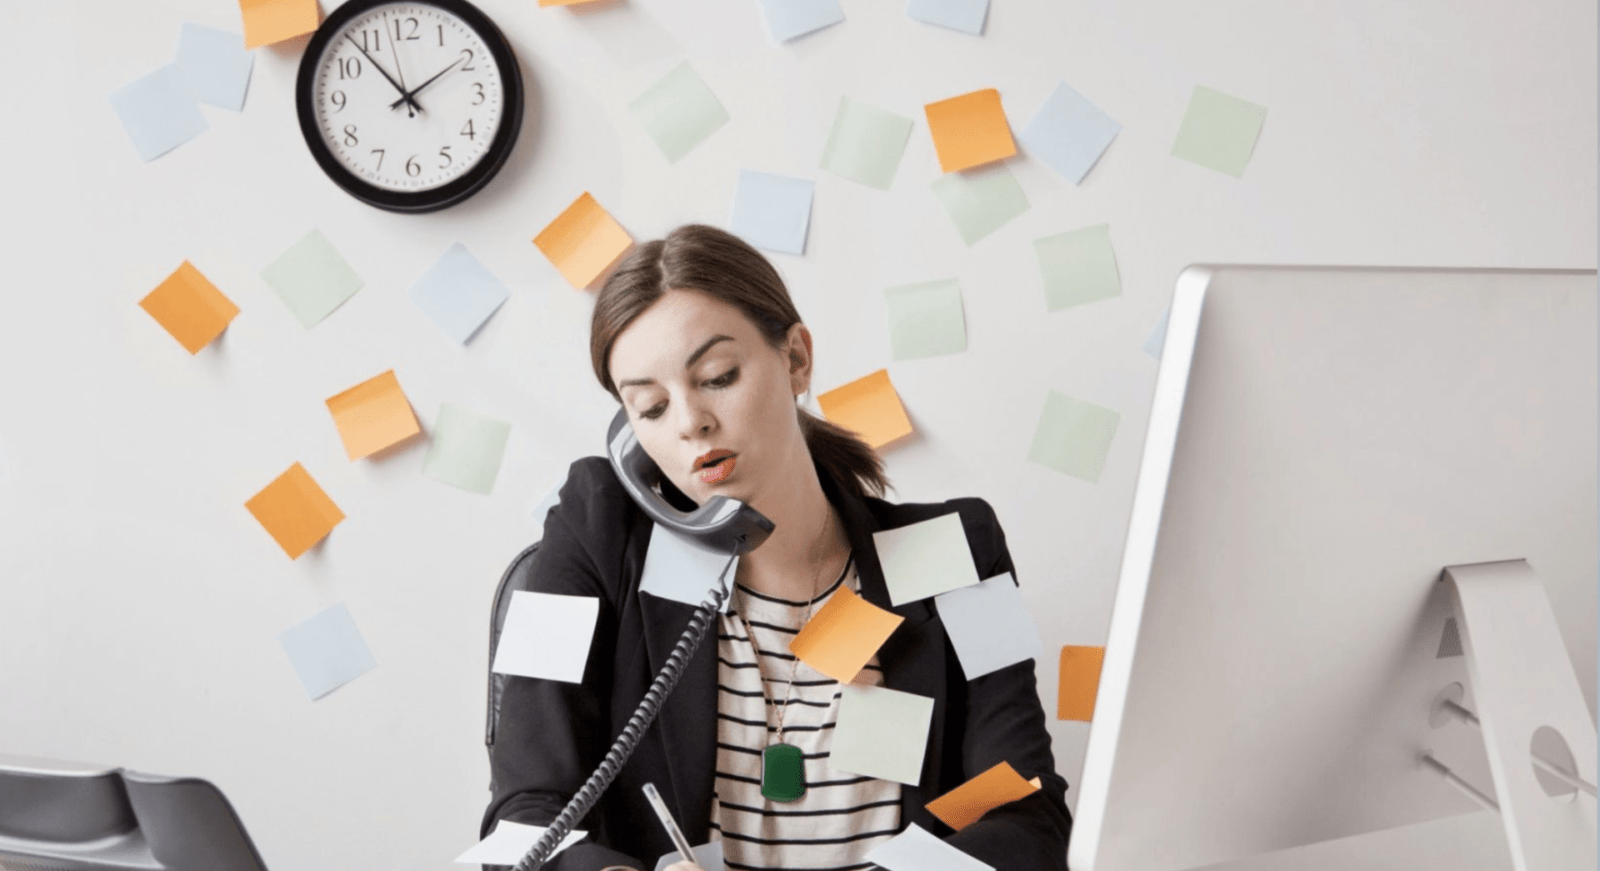 Want to feel smarter and more productive? Stop multitasking!